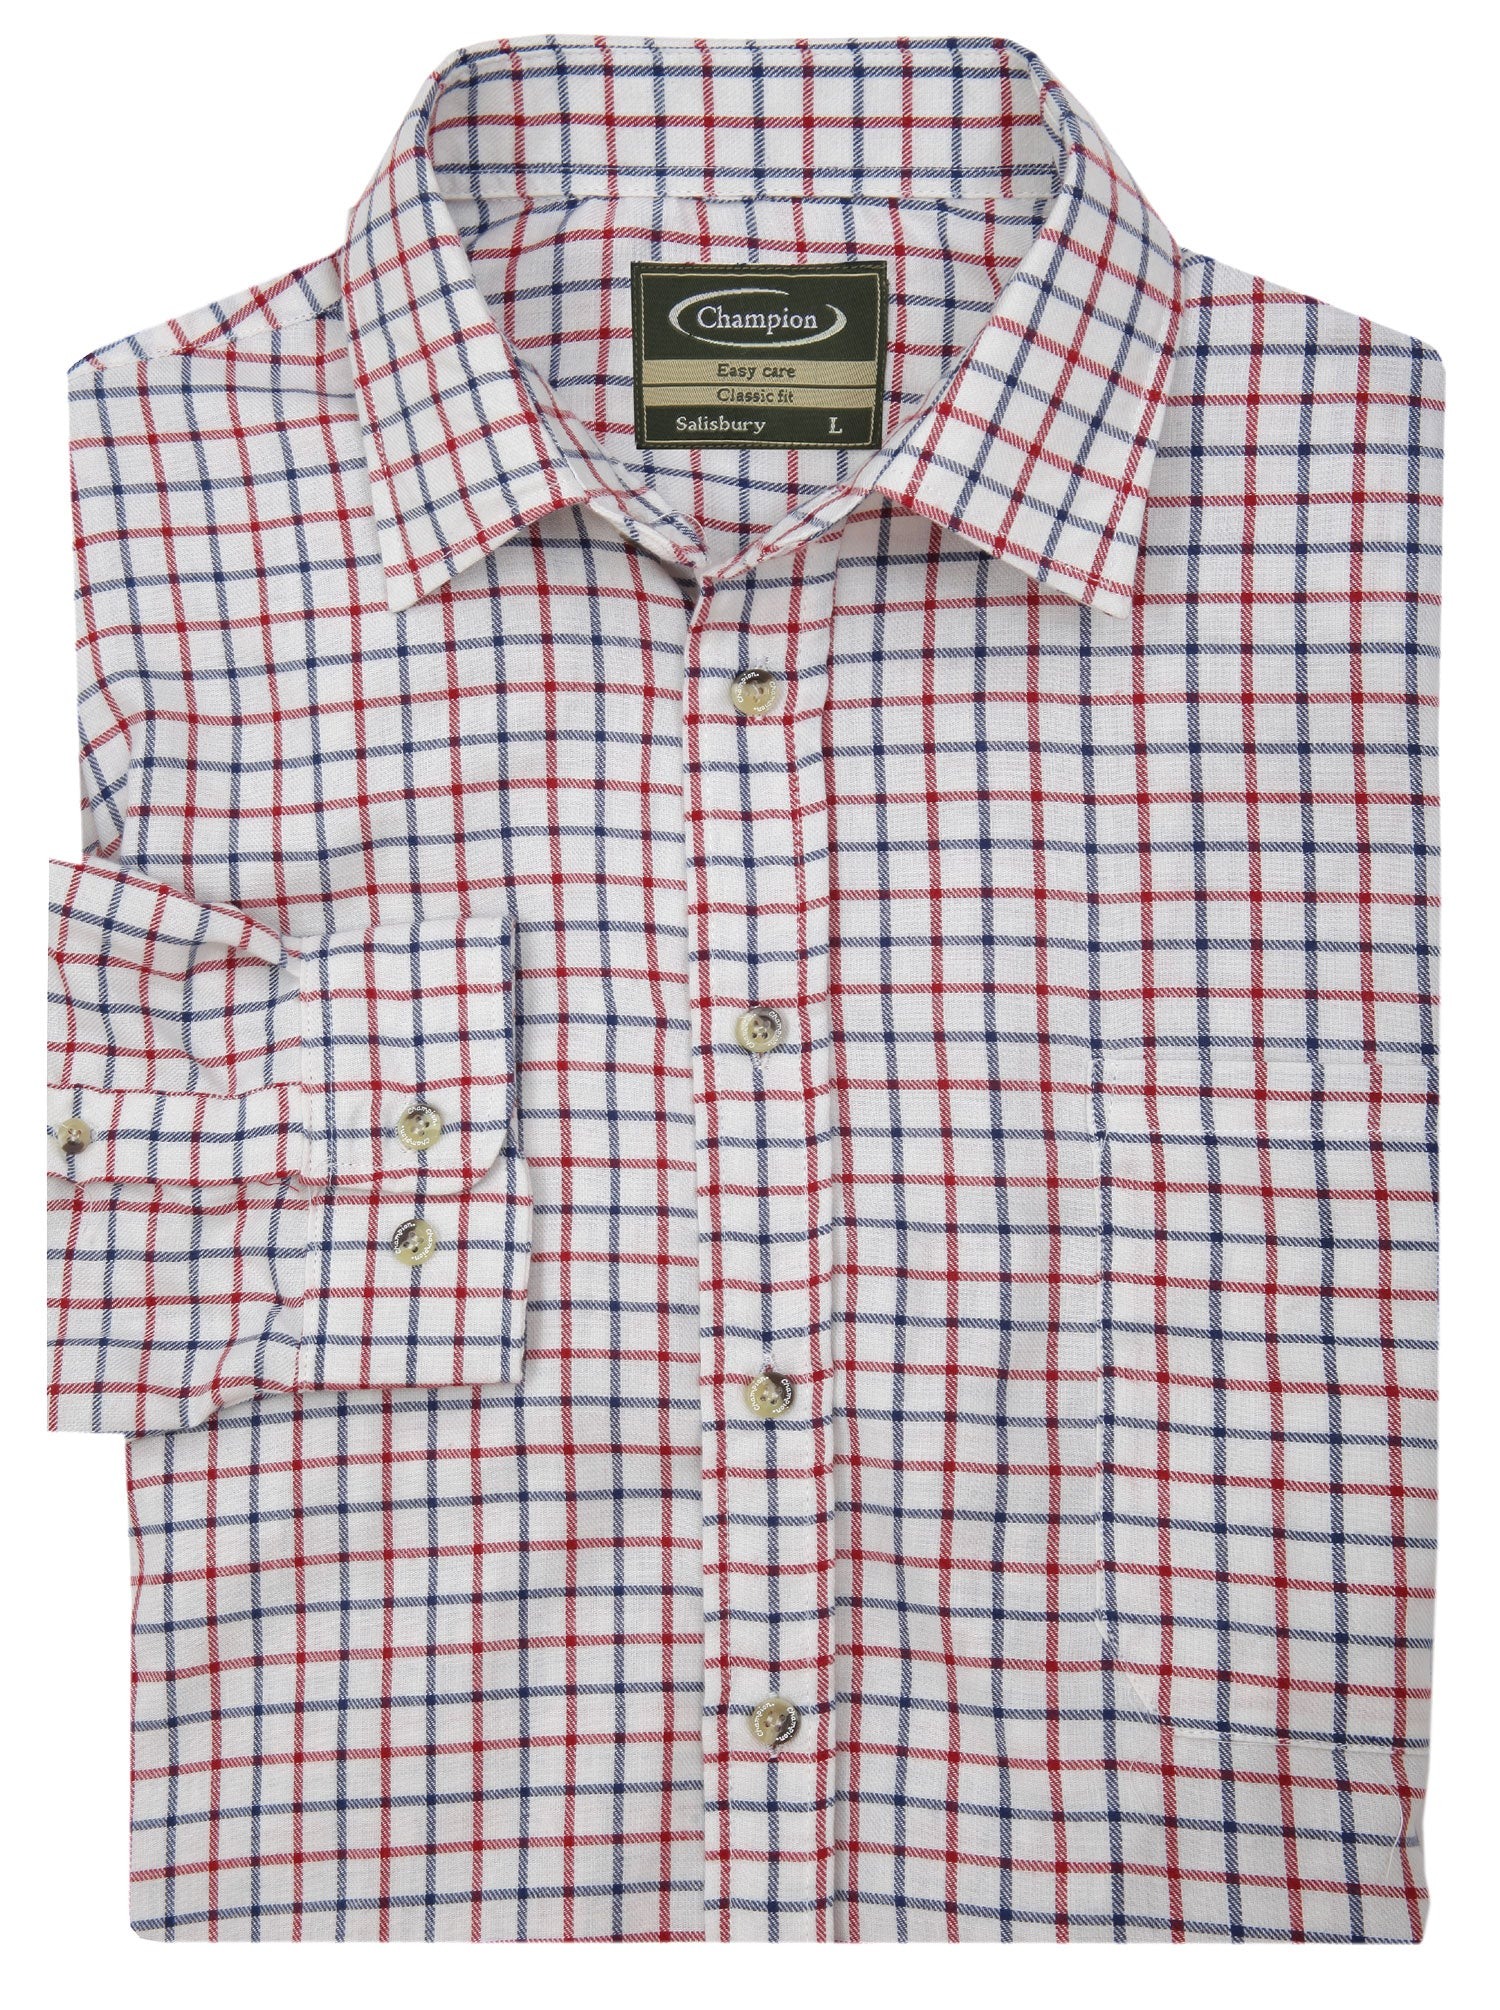 Salisbury Tattersall Country Check Shirt by Champion red and blue